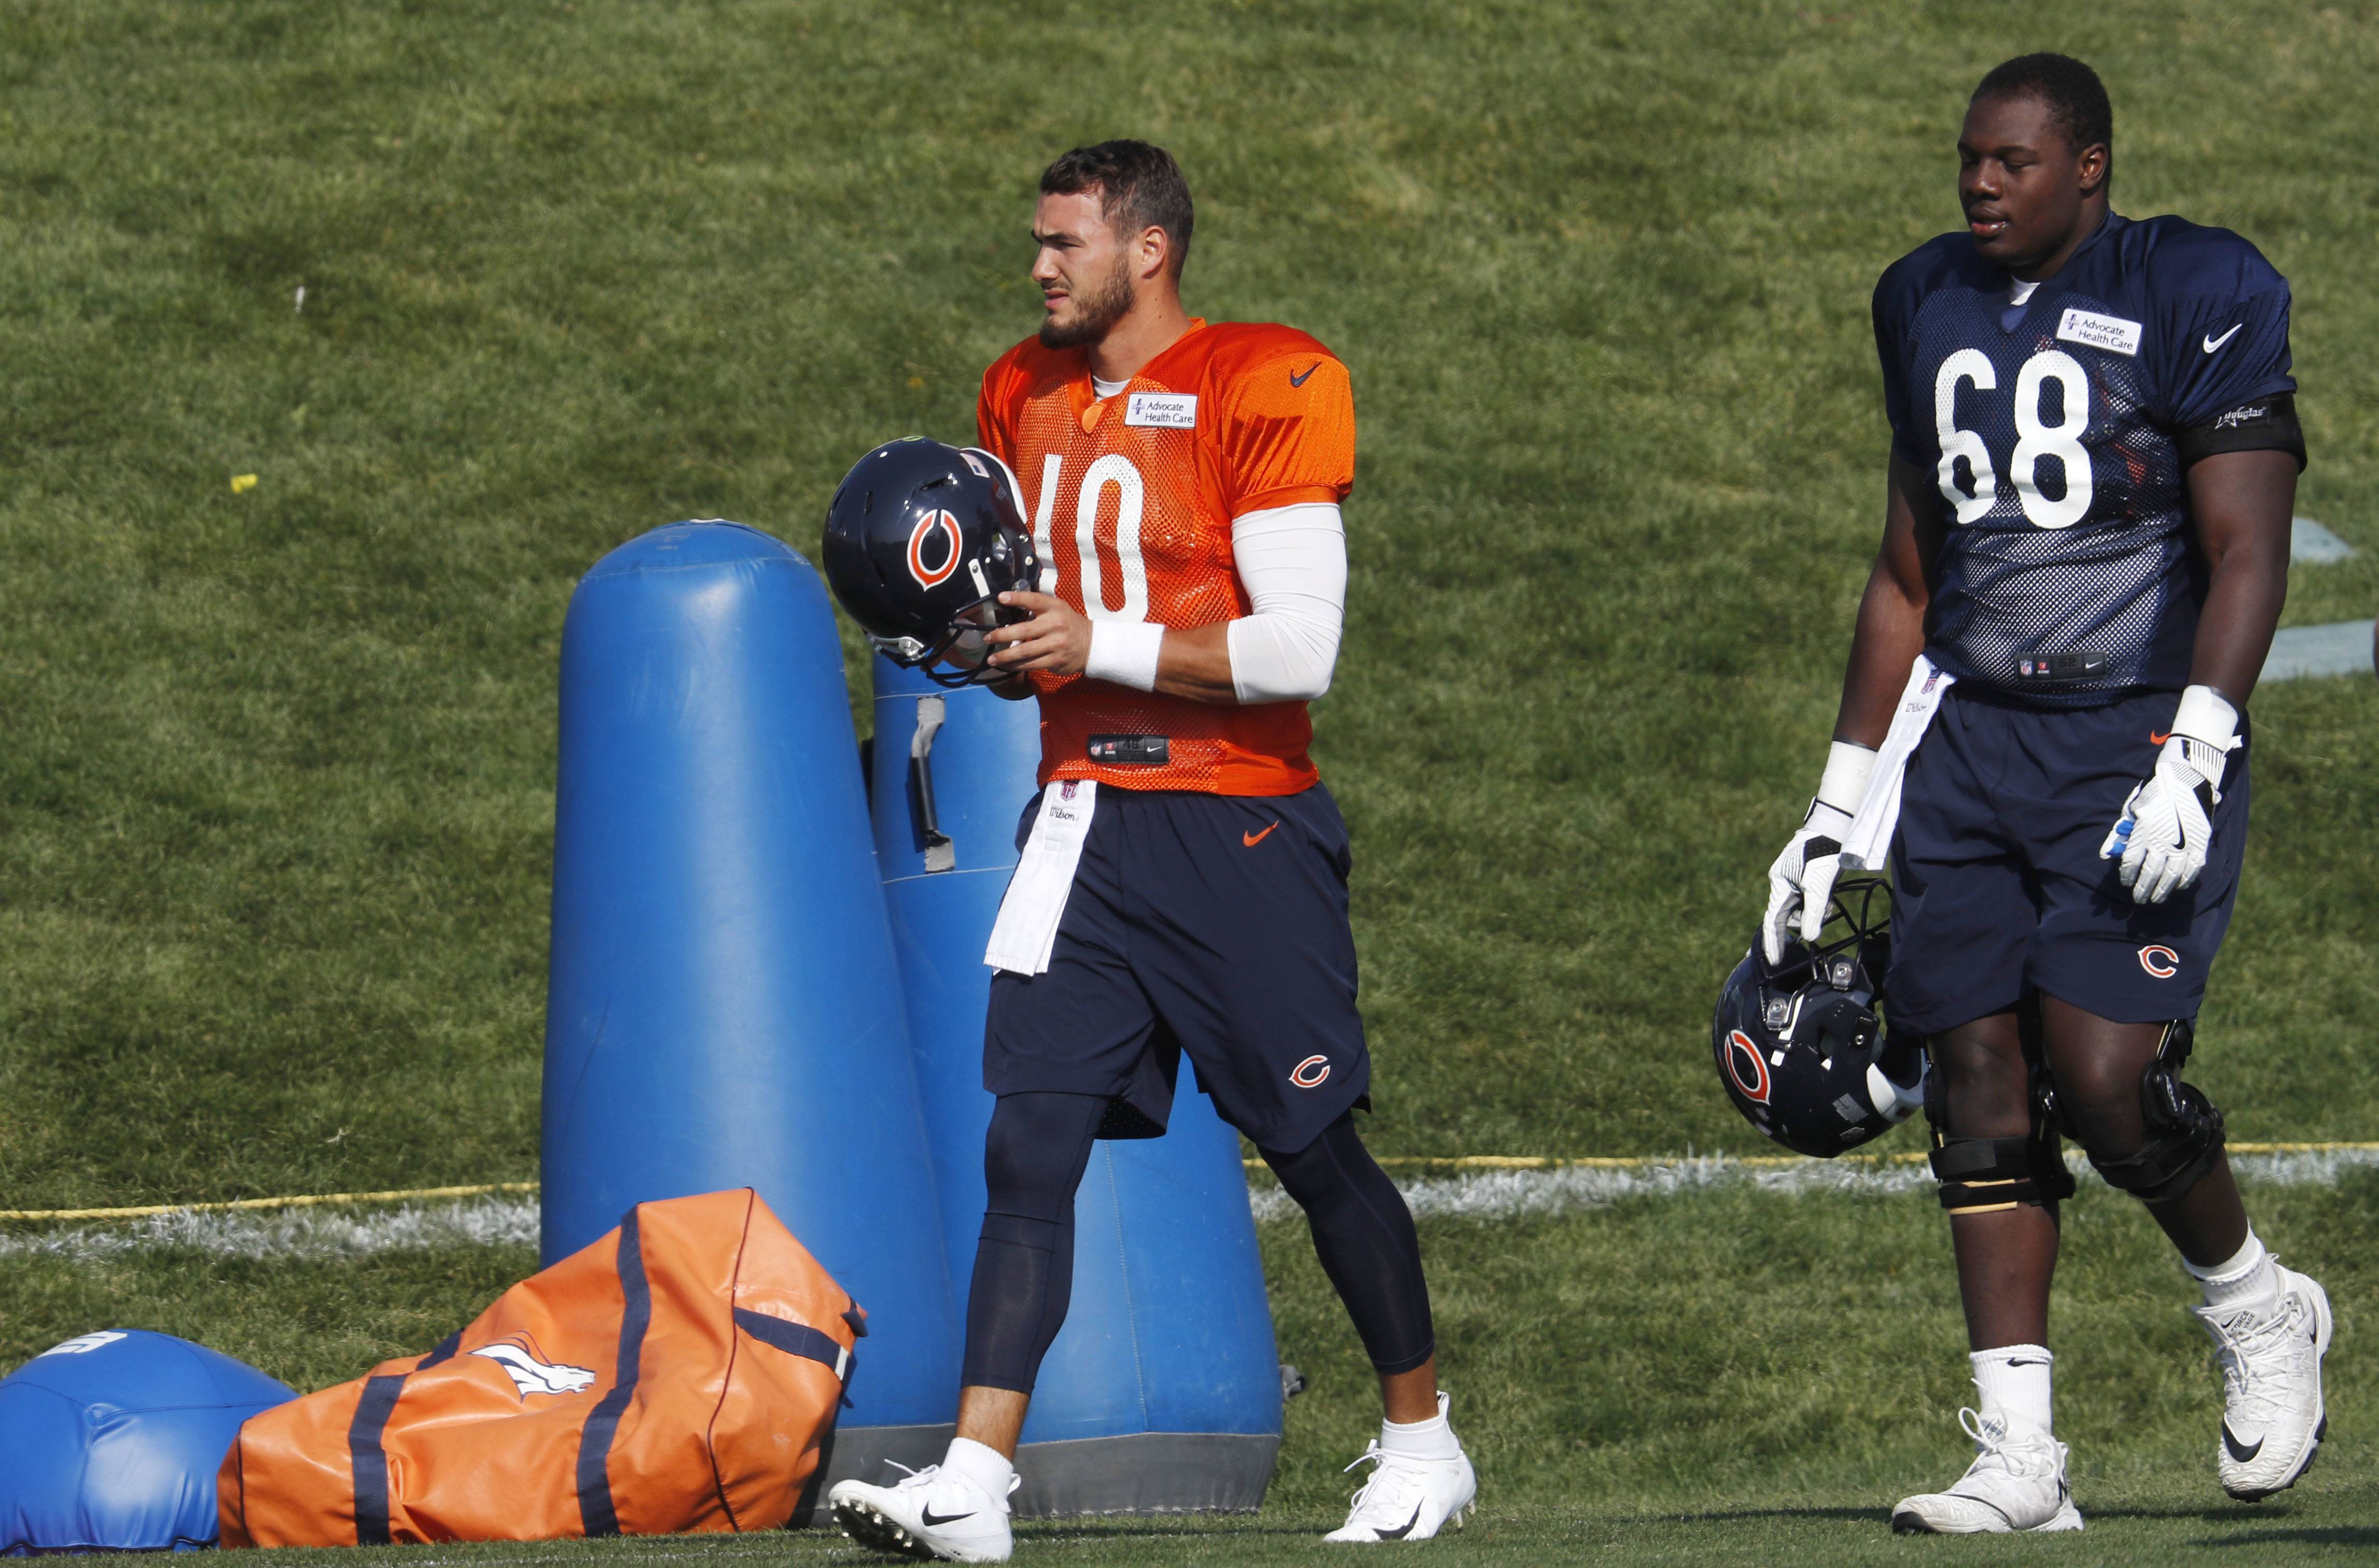 Chicago Bears quarterback Mitchell Trubisky, left, and center James Daniels head to drills during a joint NFL football training camp session with the Denver Broncos, Thursday, Aug. 16, 2018, in Englewood, Colo.